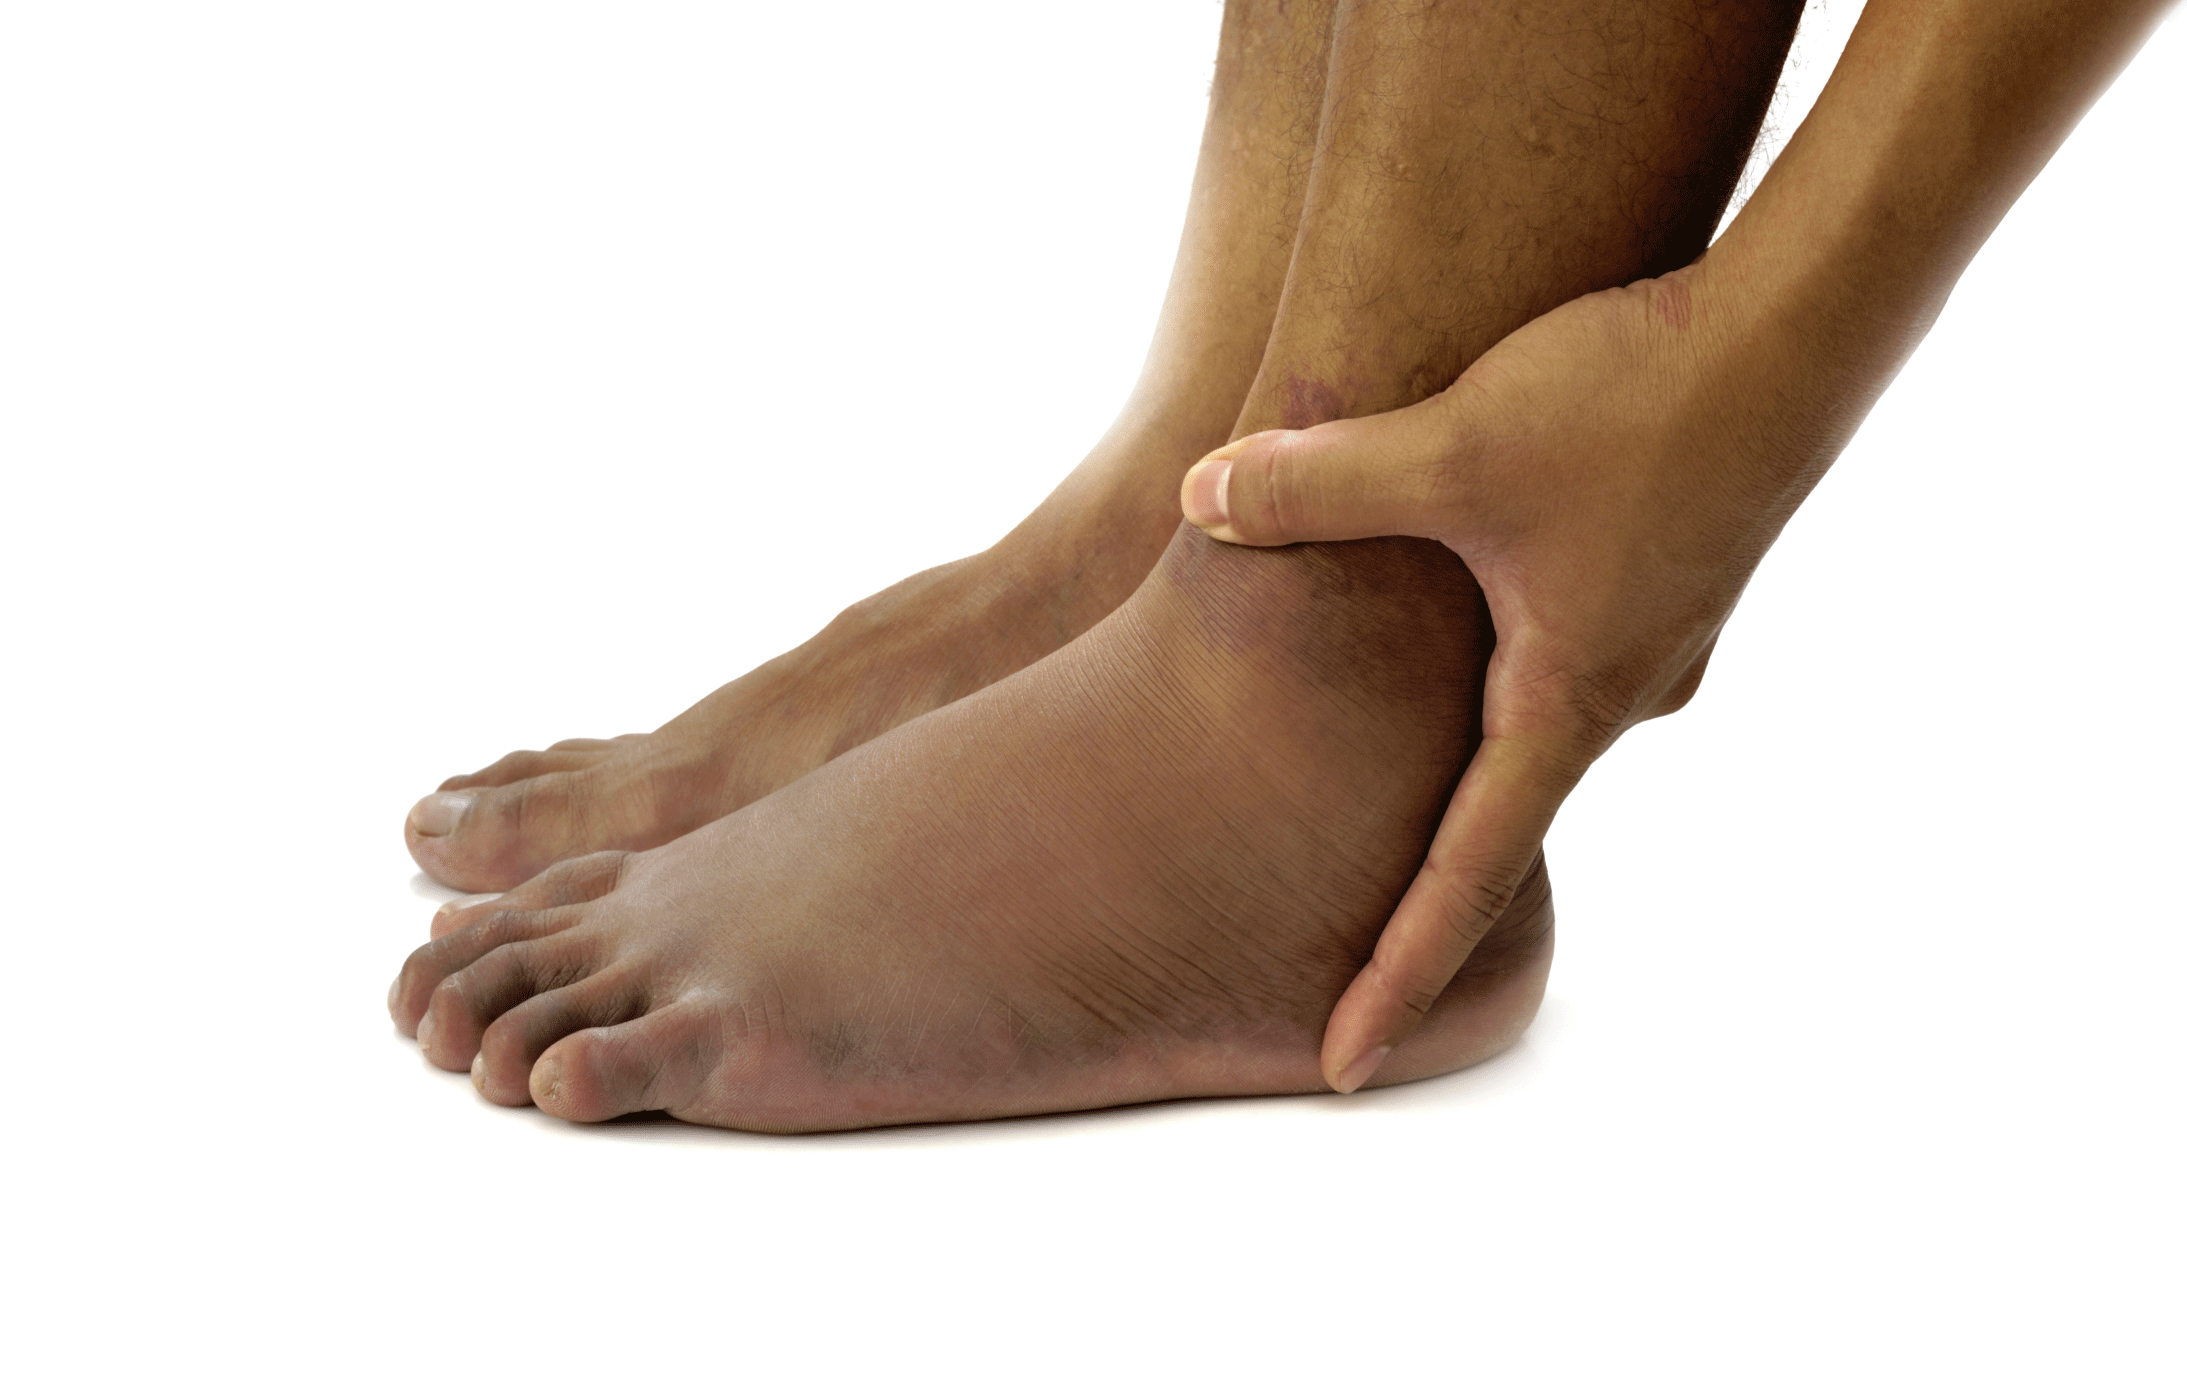 Fluid Retention Symptoms Causes Treatments